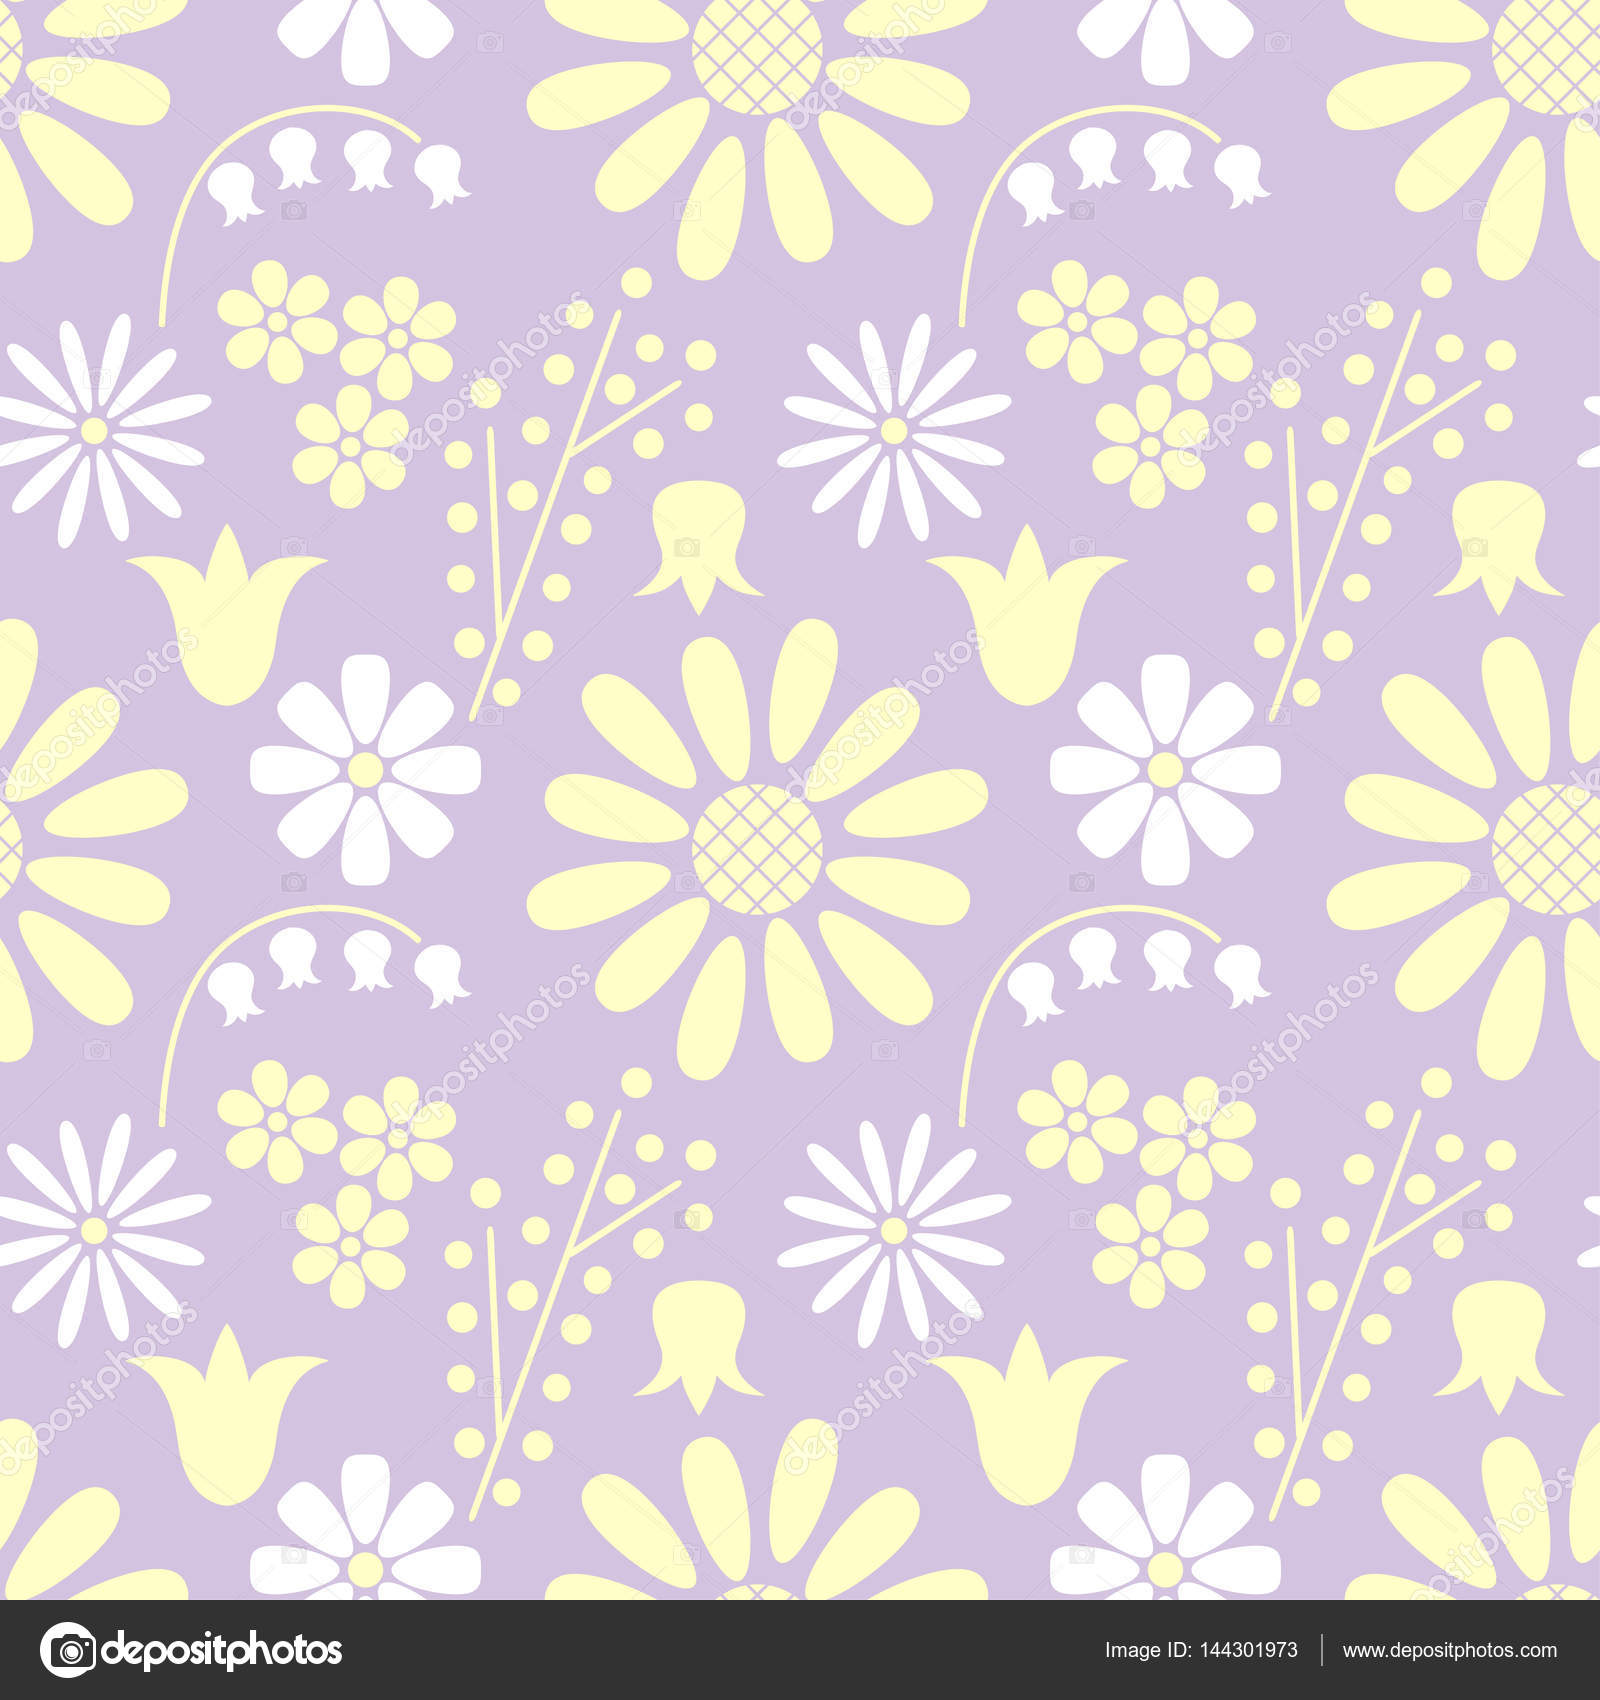 Floral Seamless Pattern Of Different White And Yellow Flowers On A